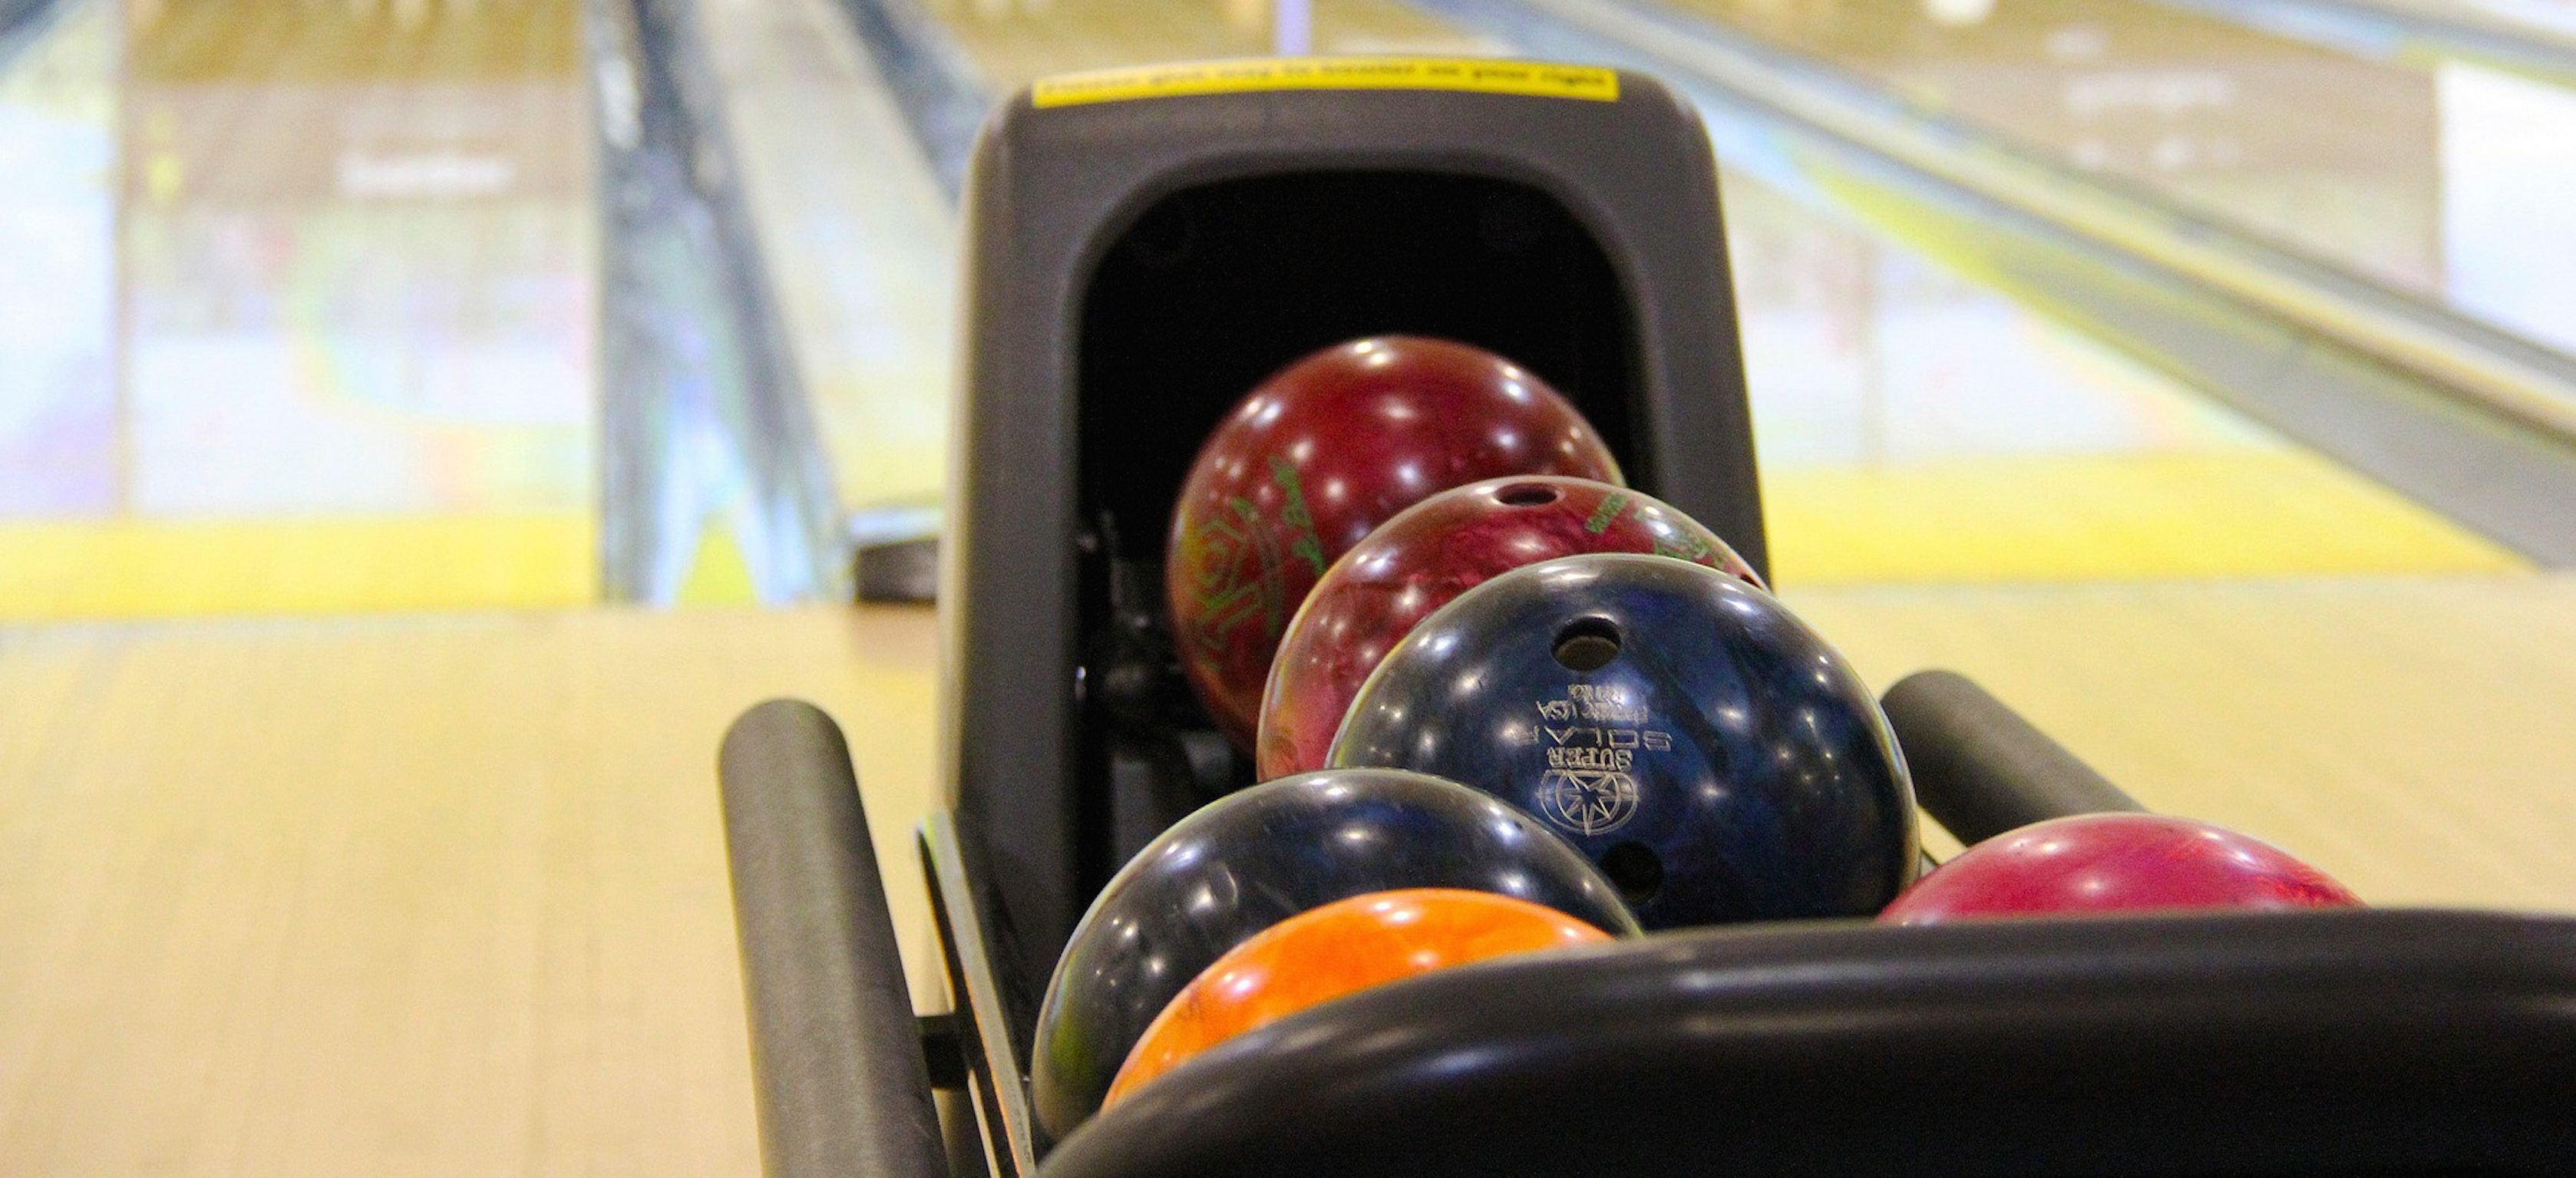 ALANYC Charity Event: I Hear The Bowling Thunder